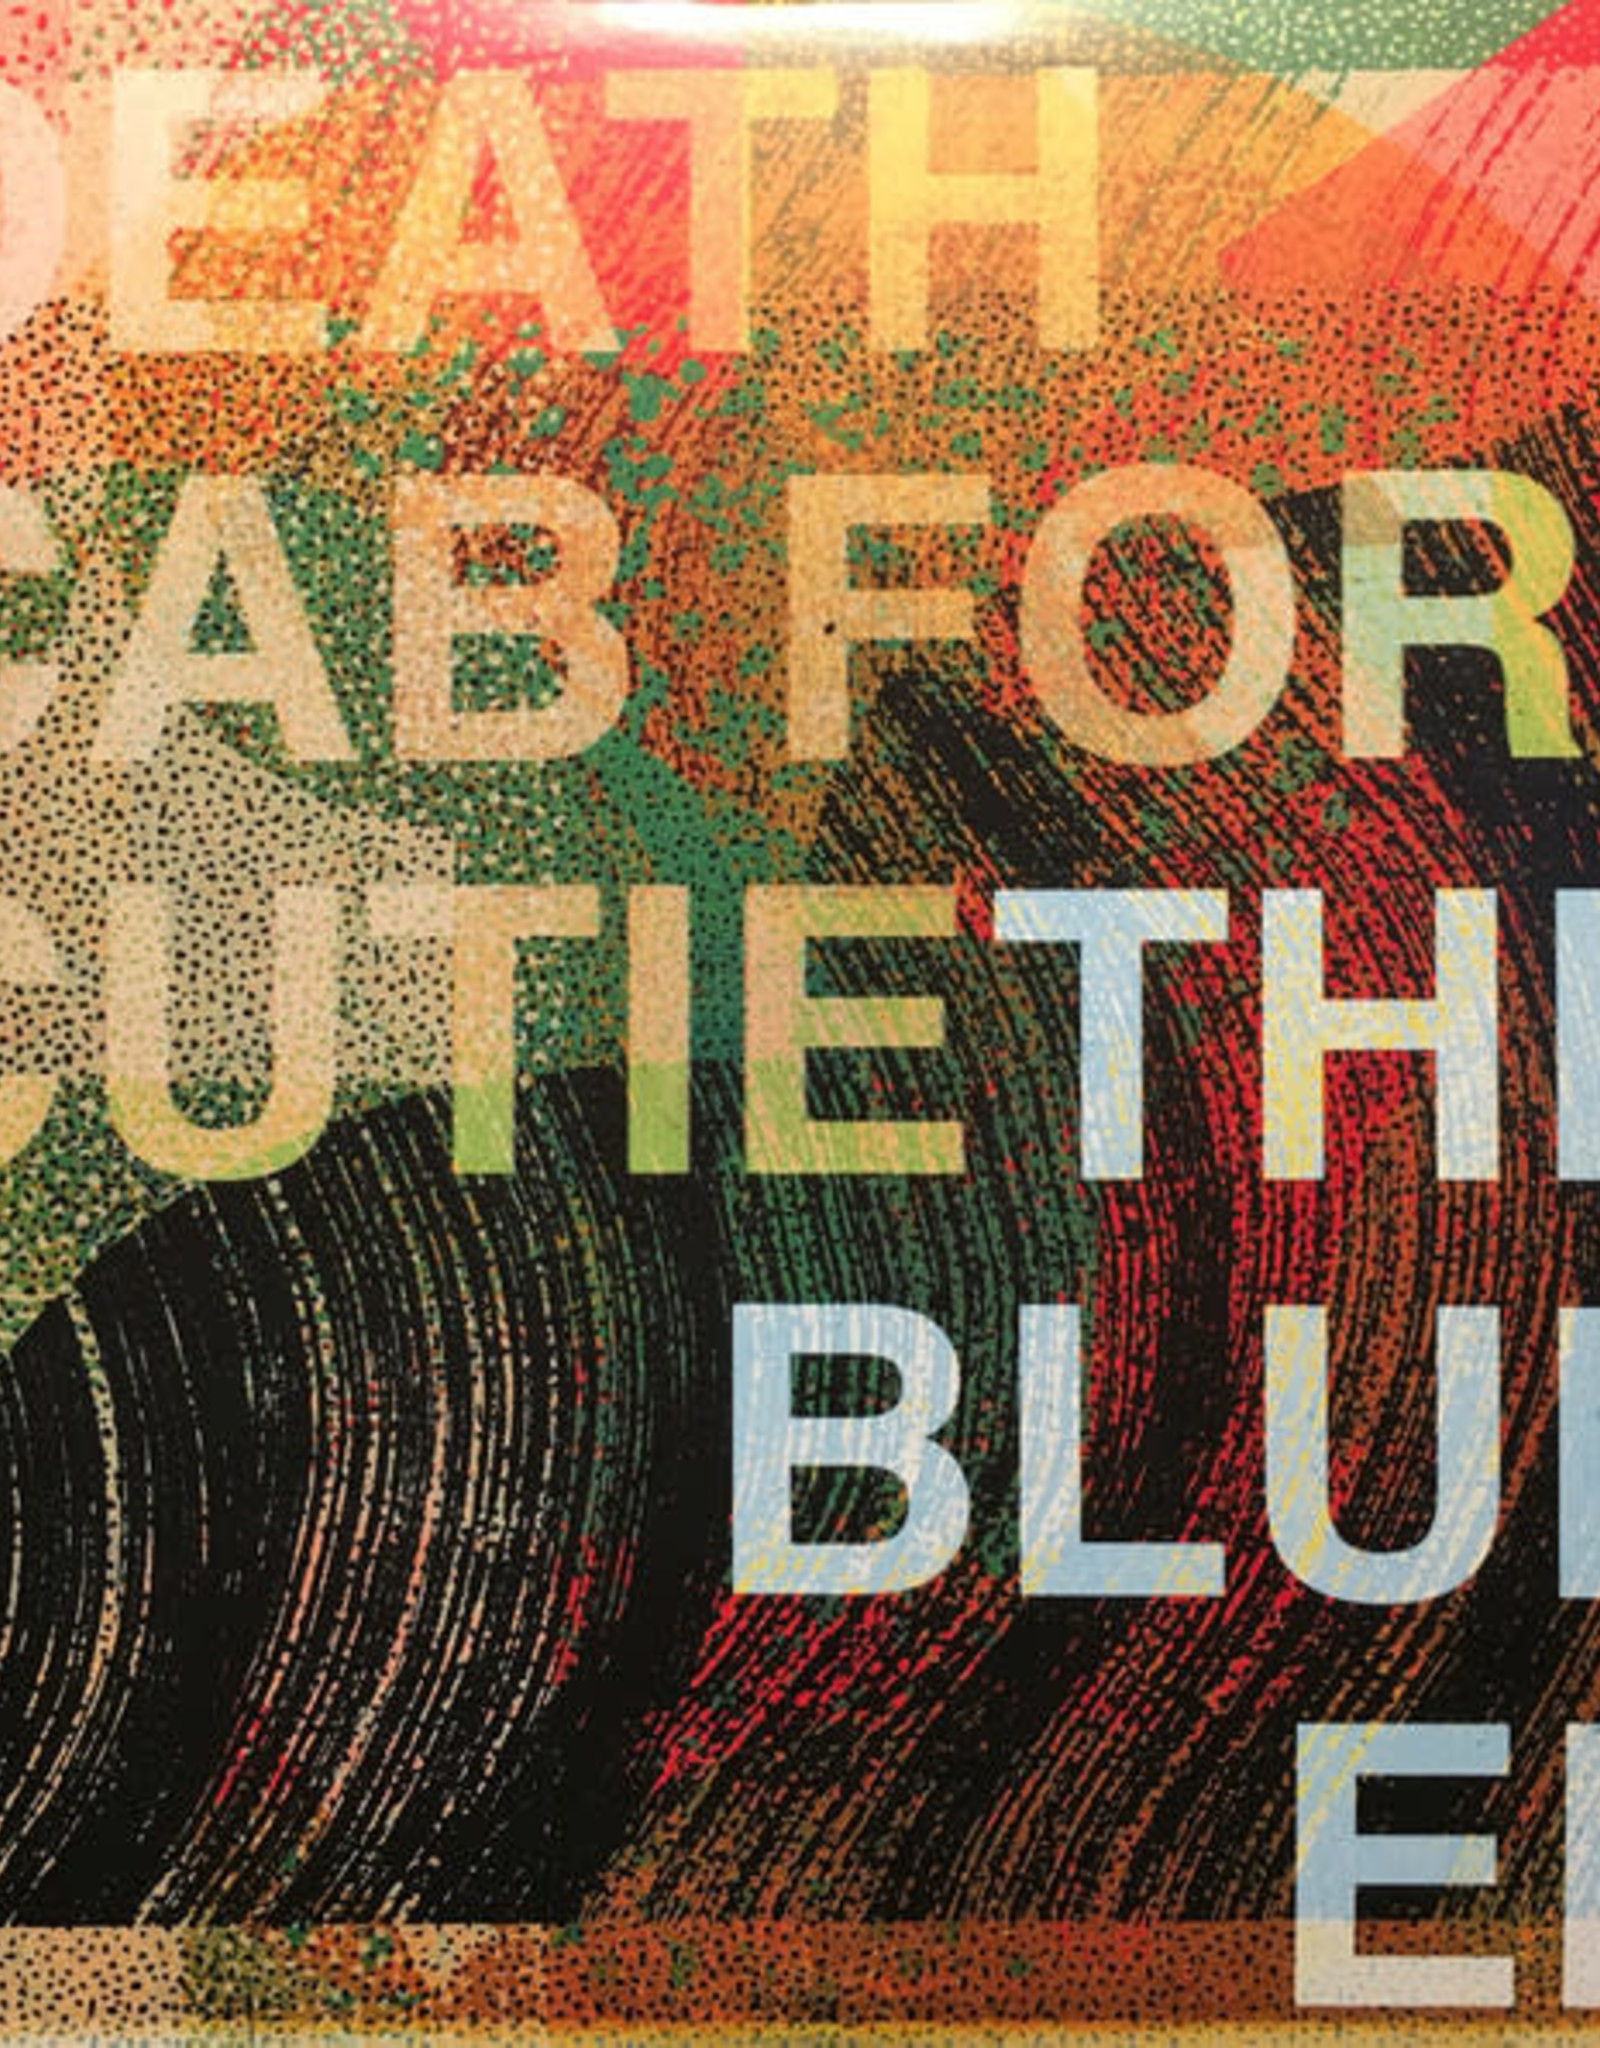 Death Cab For Cutie - The Blue Ep (Limited Edition Blue Vinyl)